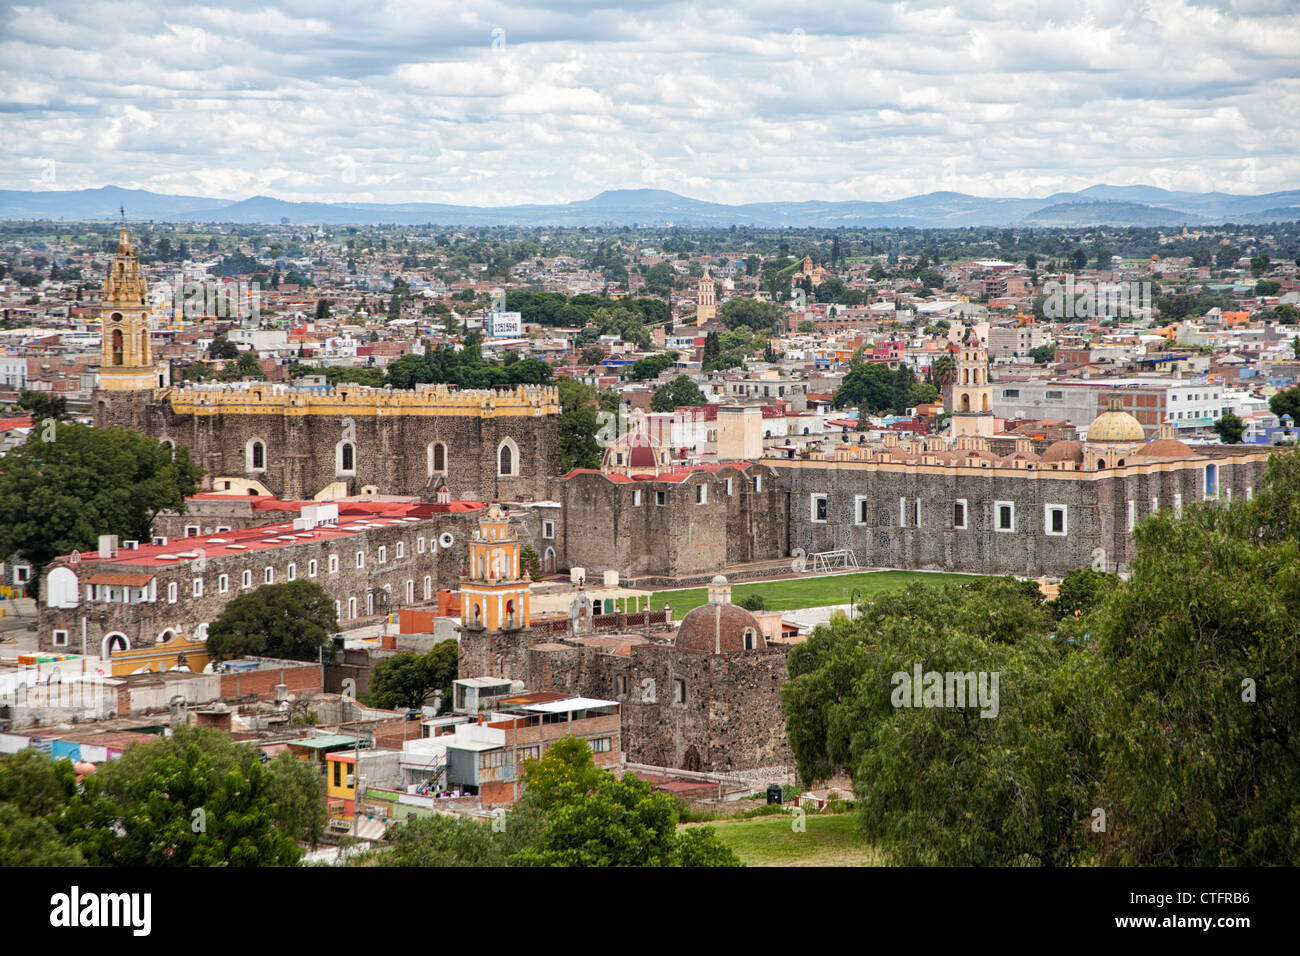 View towards the Monastery of San Gabriel and the historic town Cholula, Puebla, Mexico - Stock Image